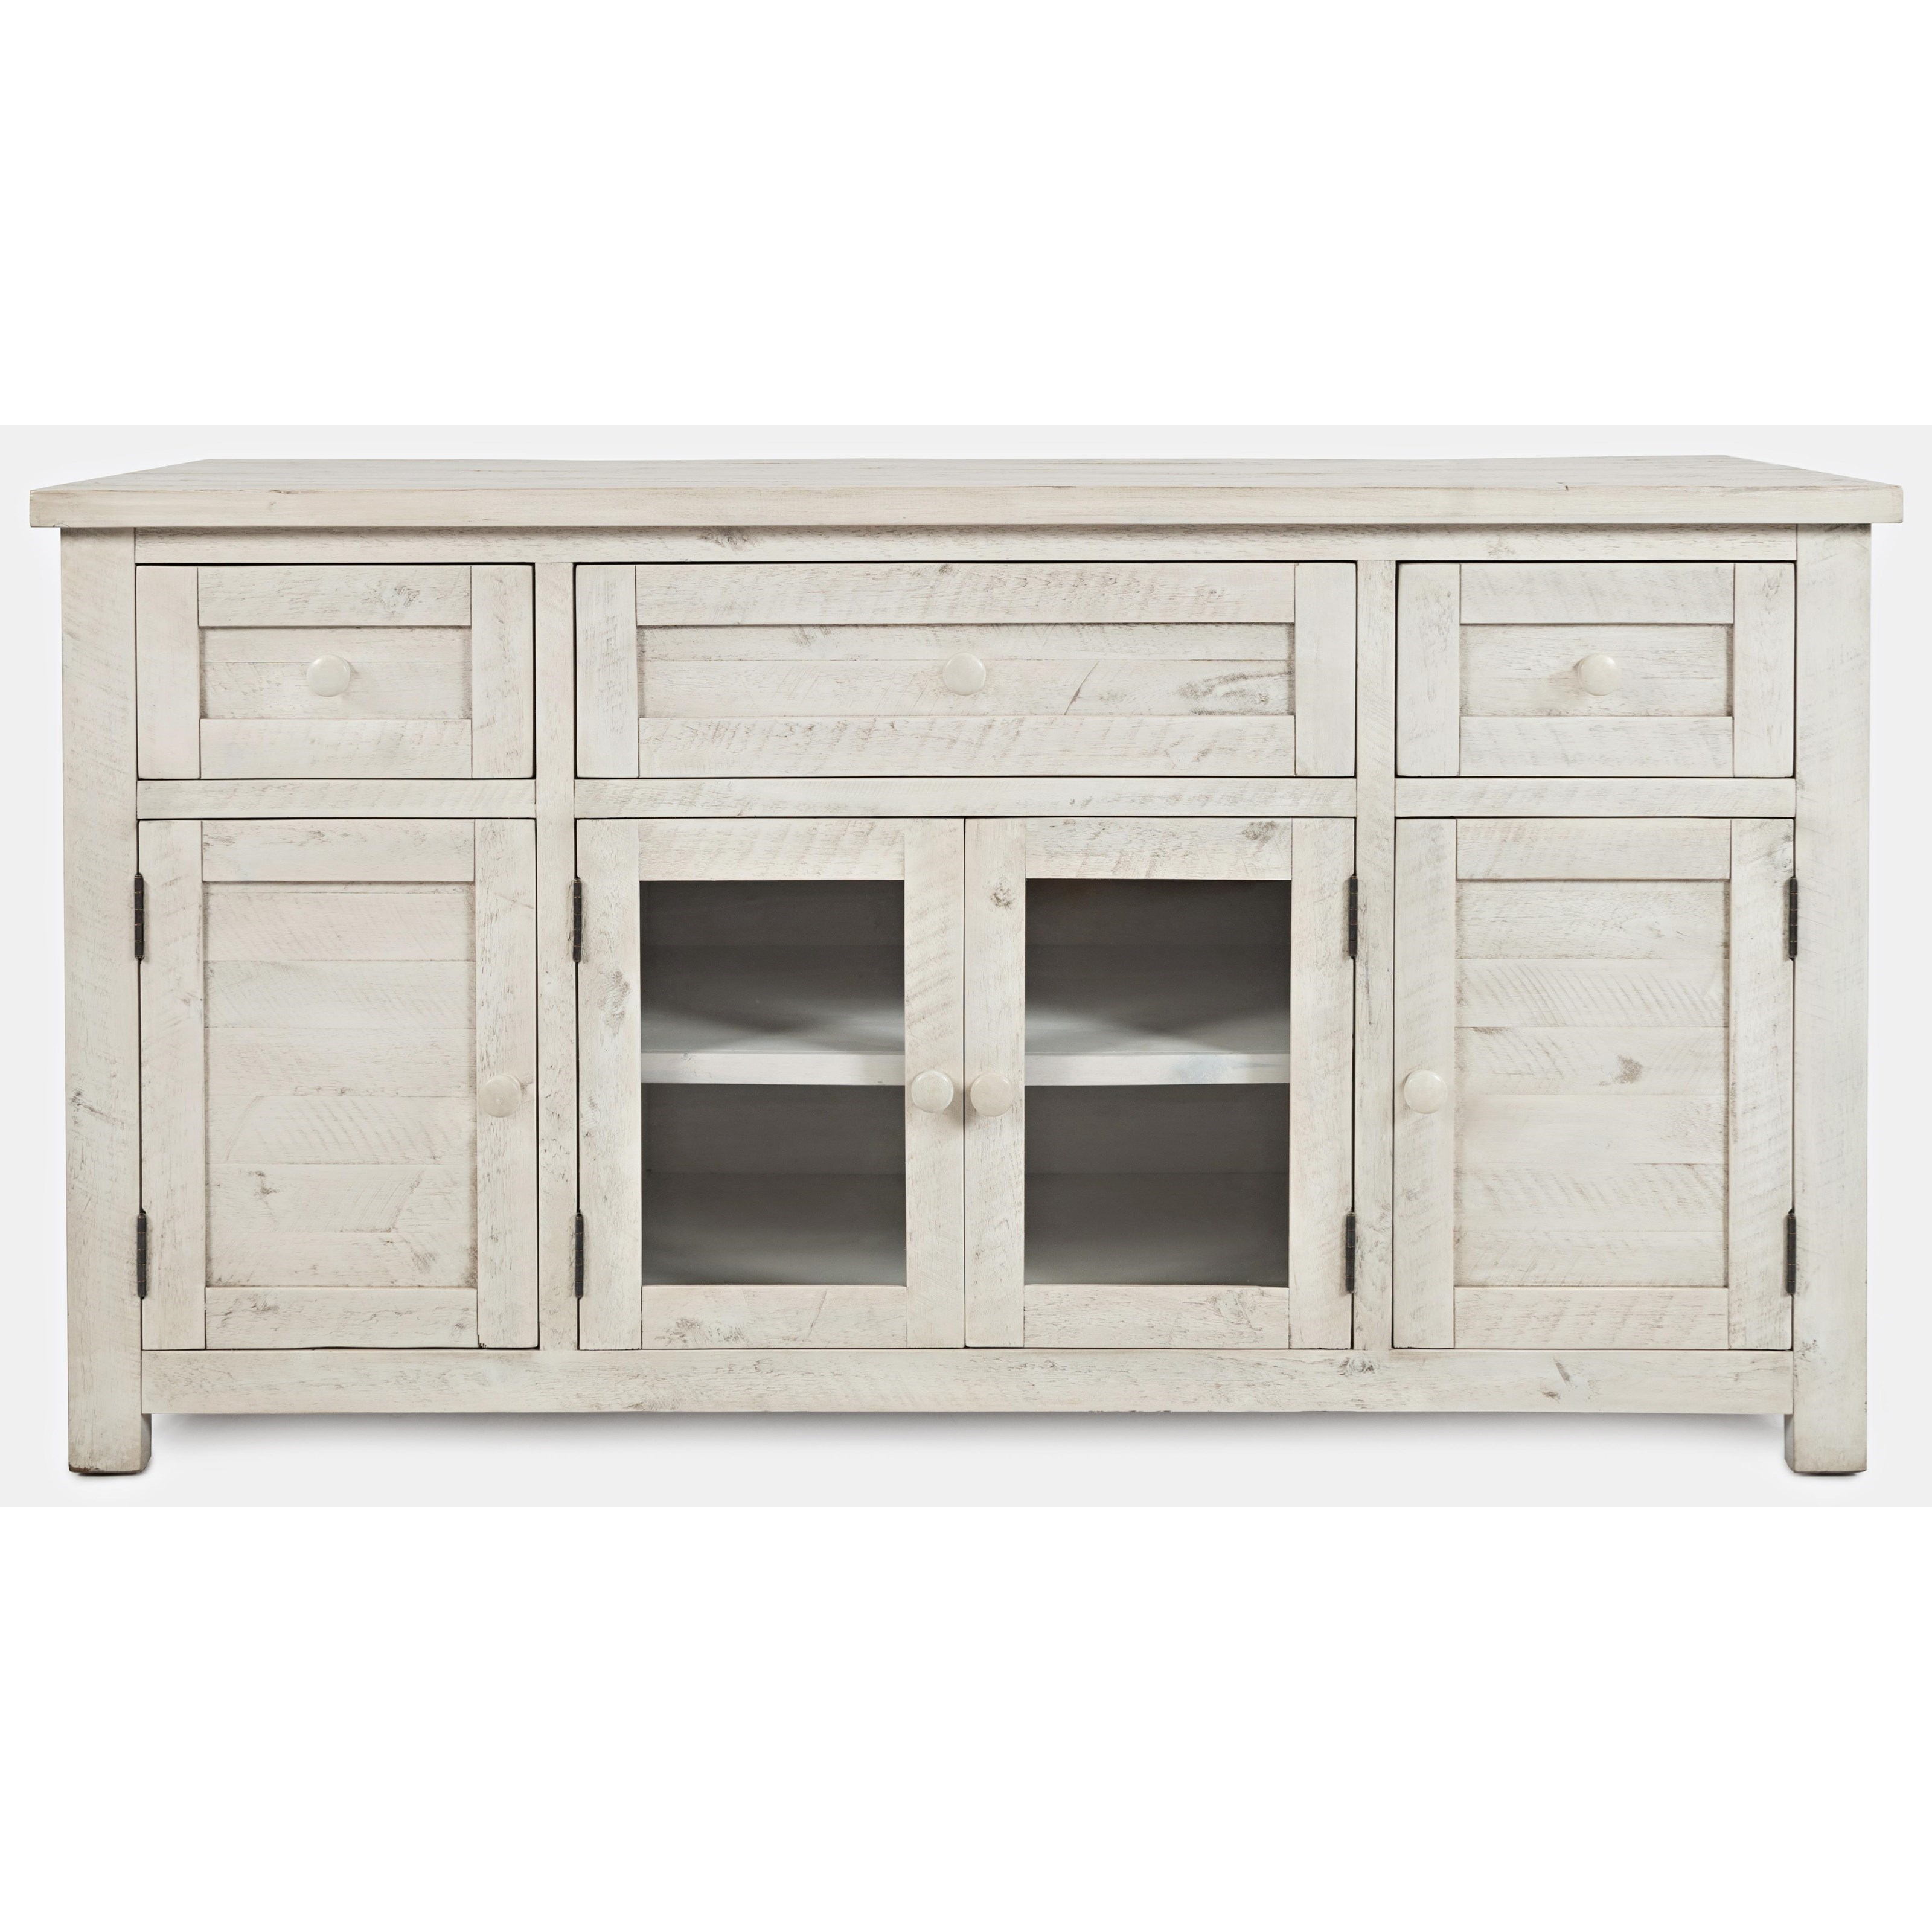 American Folklore Media Console by Jofran at Value City Furniture